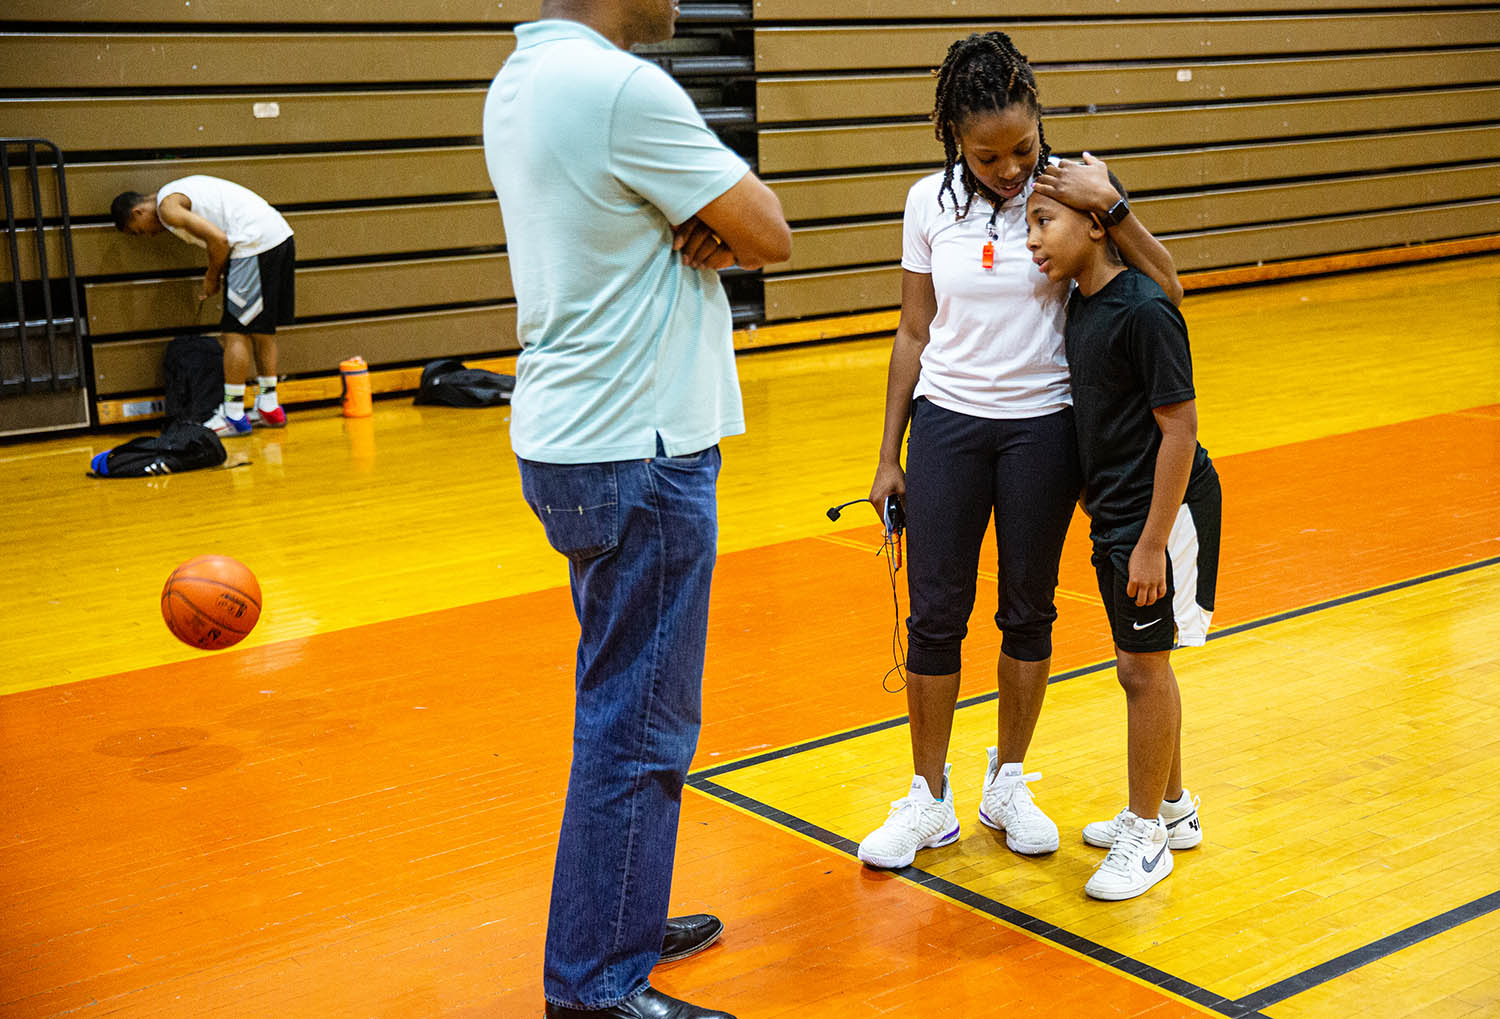 "Marke Freeman, center, a former Lanphier High School and professional basketball player, gives Jayden Jefferson, 10, at the end of a day of camp during the 8th Annual Marke Freeman Max-OUT Basketball Camp at Lanphier High School, Wednesday, June 12, 2019, in Springfield, Ill. Freeman created the Max-OUT camp in 2011 that uses basketball as a base to ""Maximizing Opportunities, Unity, and Training in our communing,"" to over 130 youths attending the camp. [Justin L. Fowler/The State Journal-Register]"